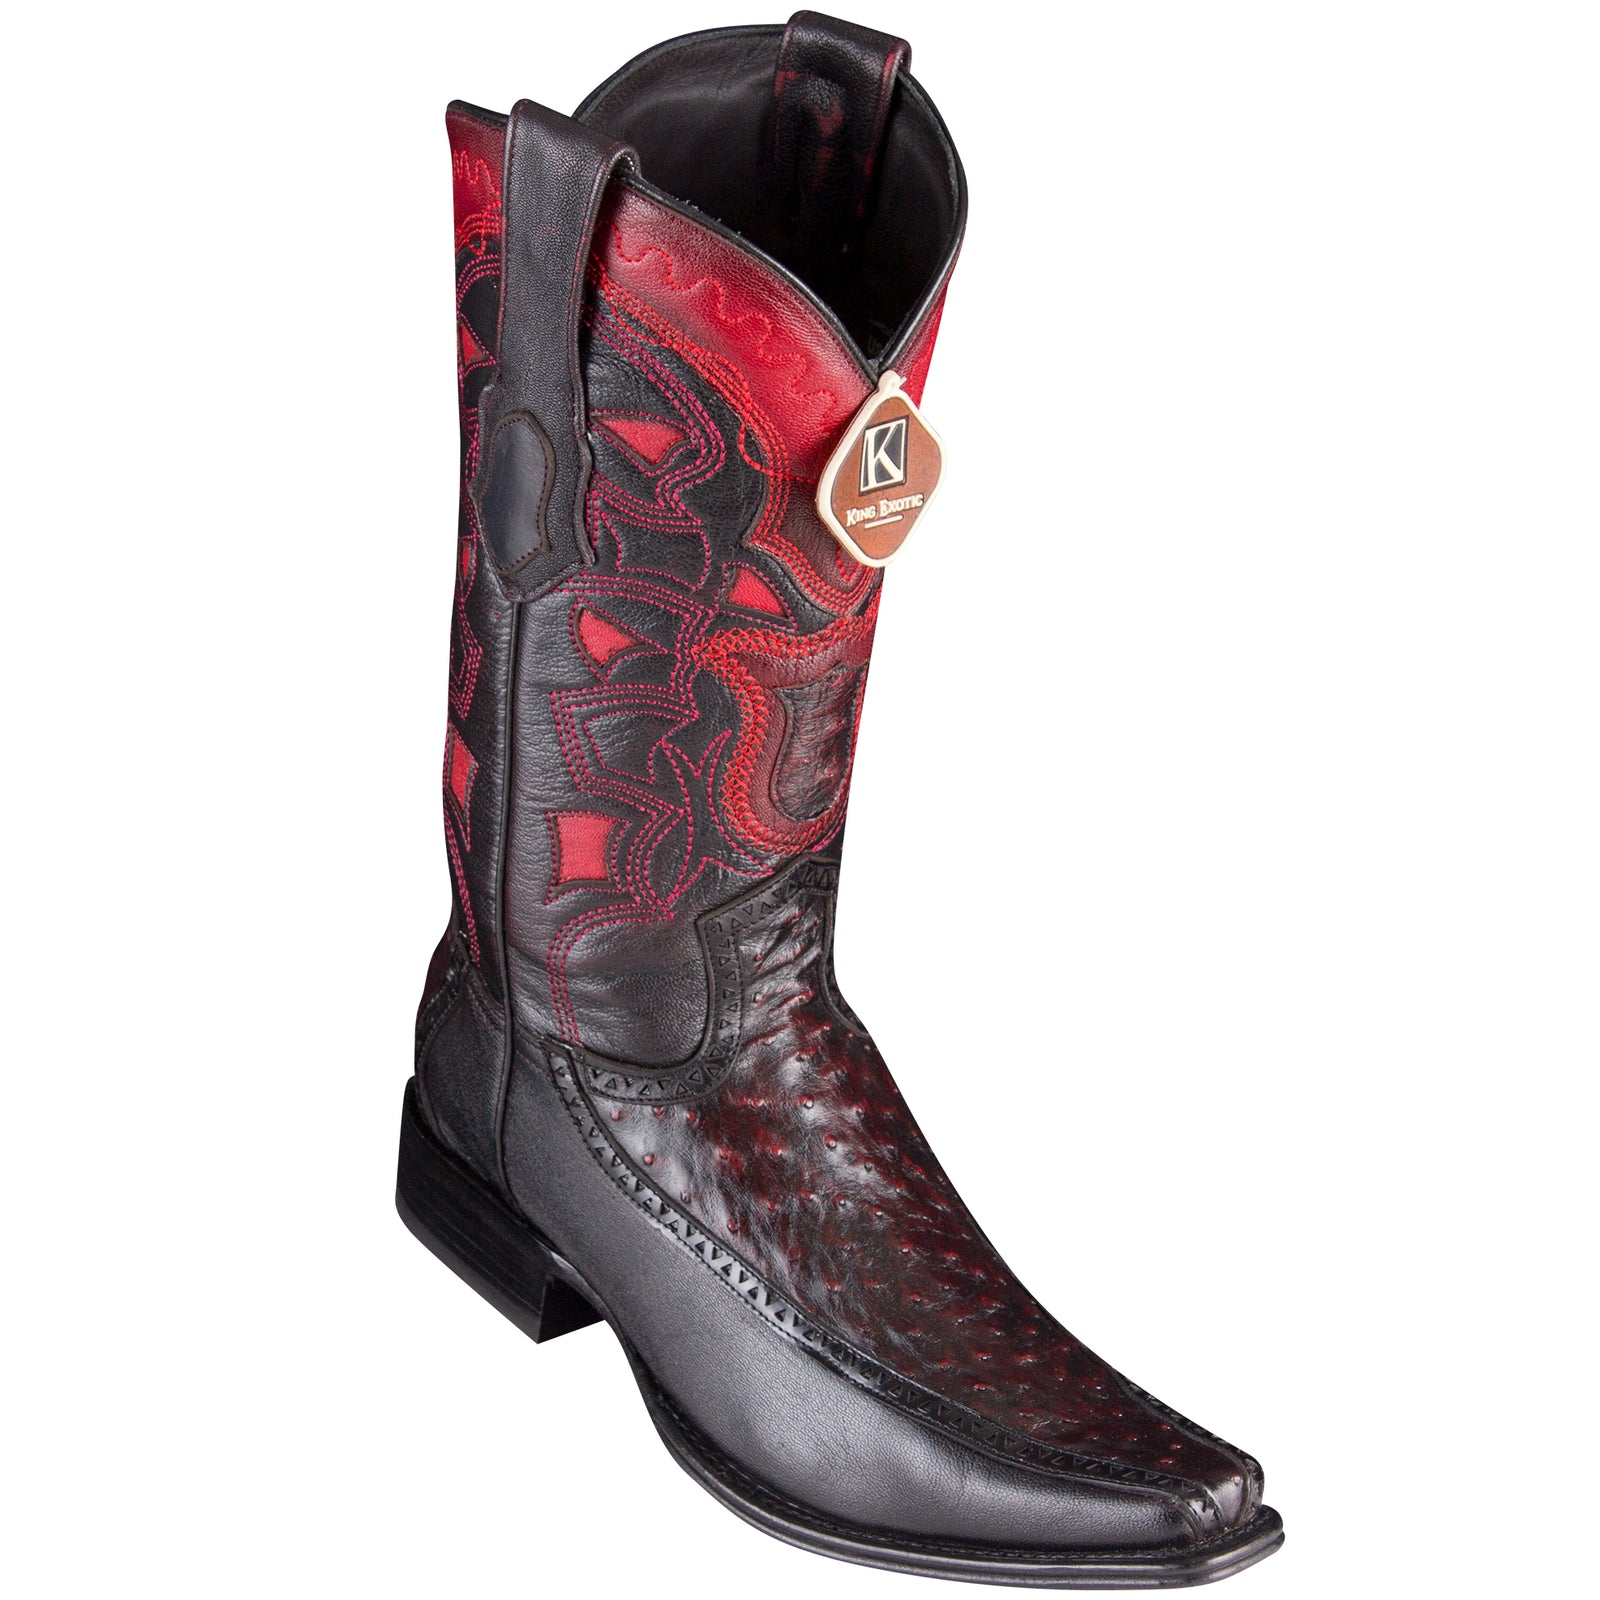 King Exotic Men's Ostrich Black Cherry Cowboy Boots - H76 European Toe